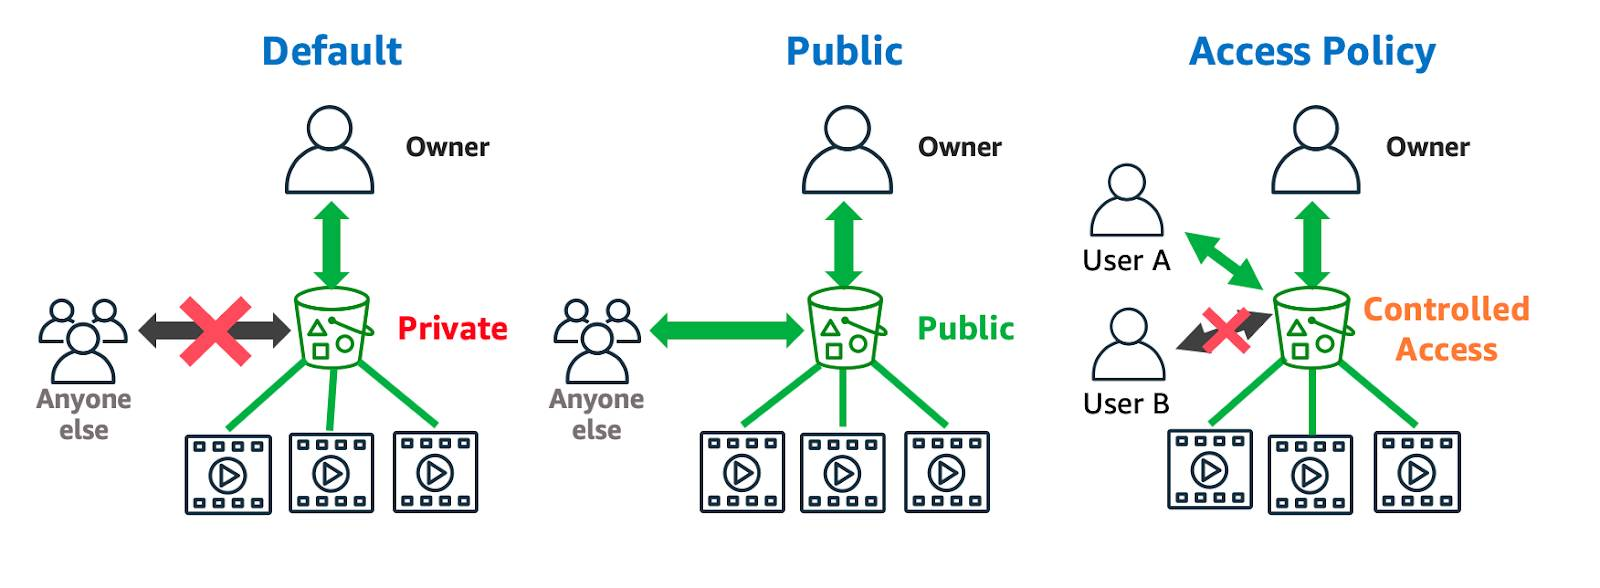 Diagram shows three connectivity options for S3: default where only the owner has access to three video assets in a bucket and Anyone else is prohibited, Public where everyone has access, and Access Policy where granular permissions give the Owner and User A access but not User B.